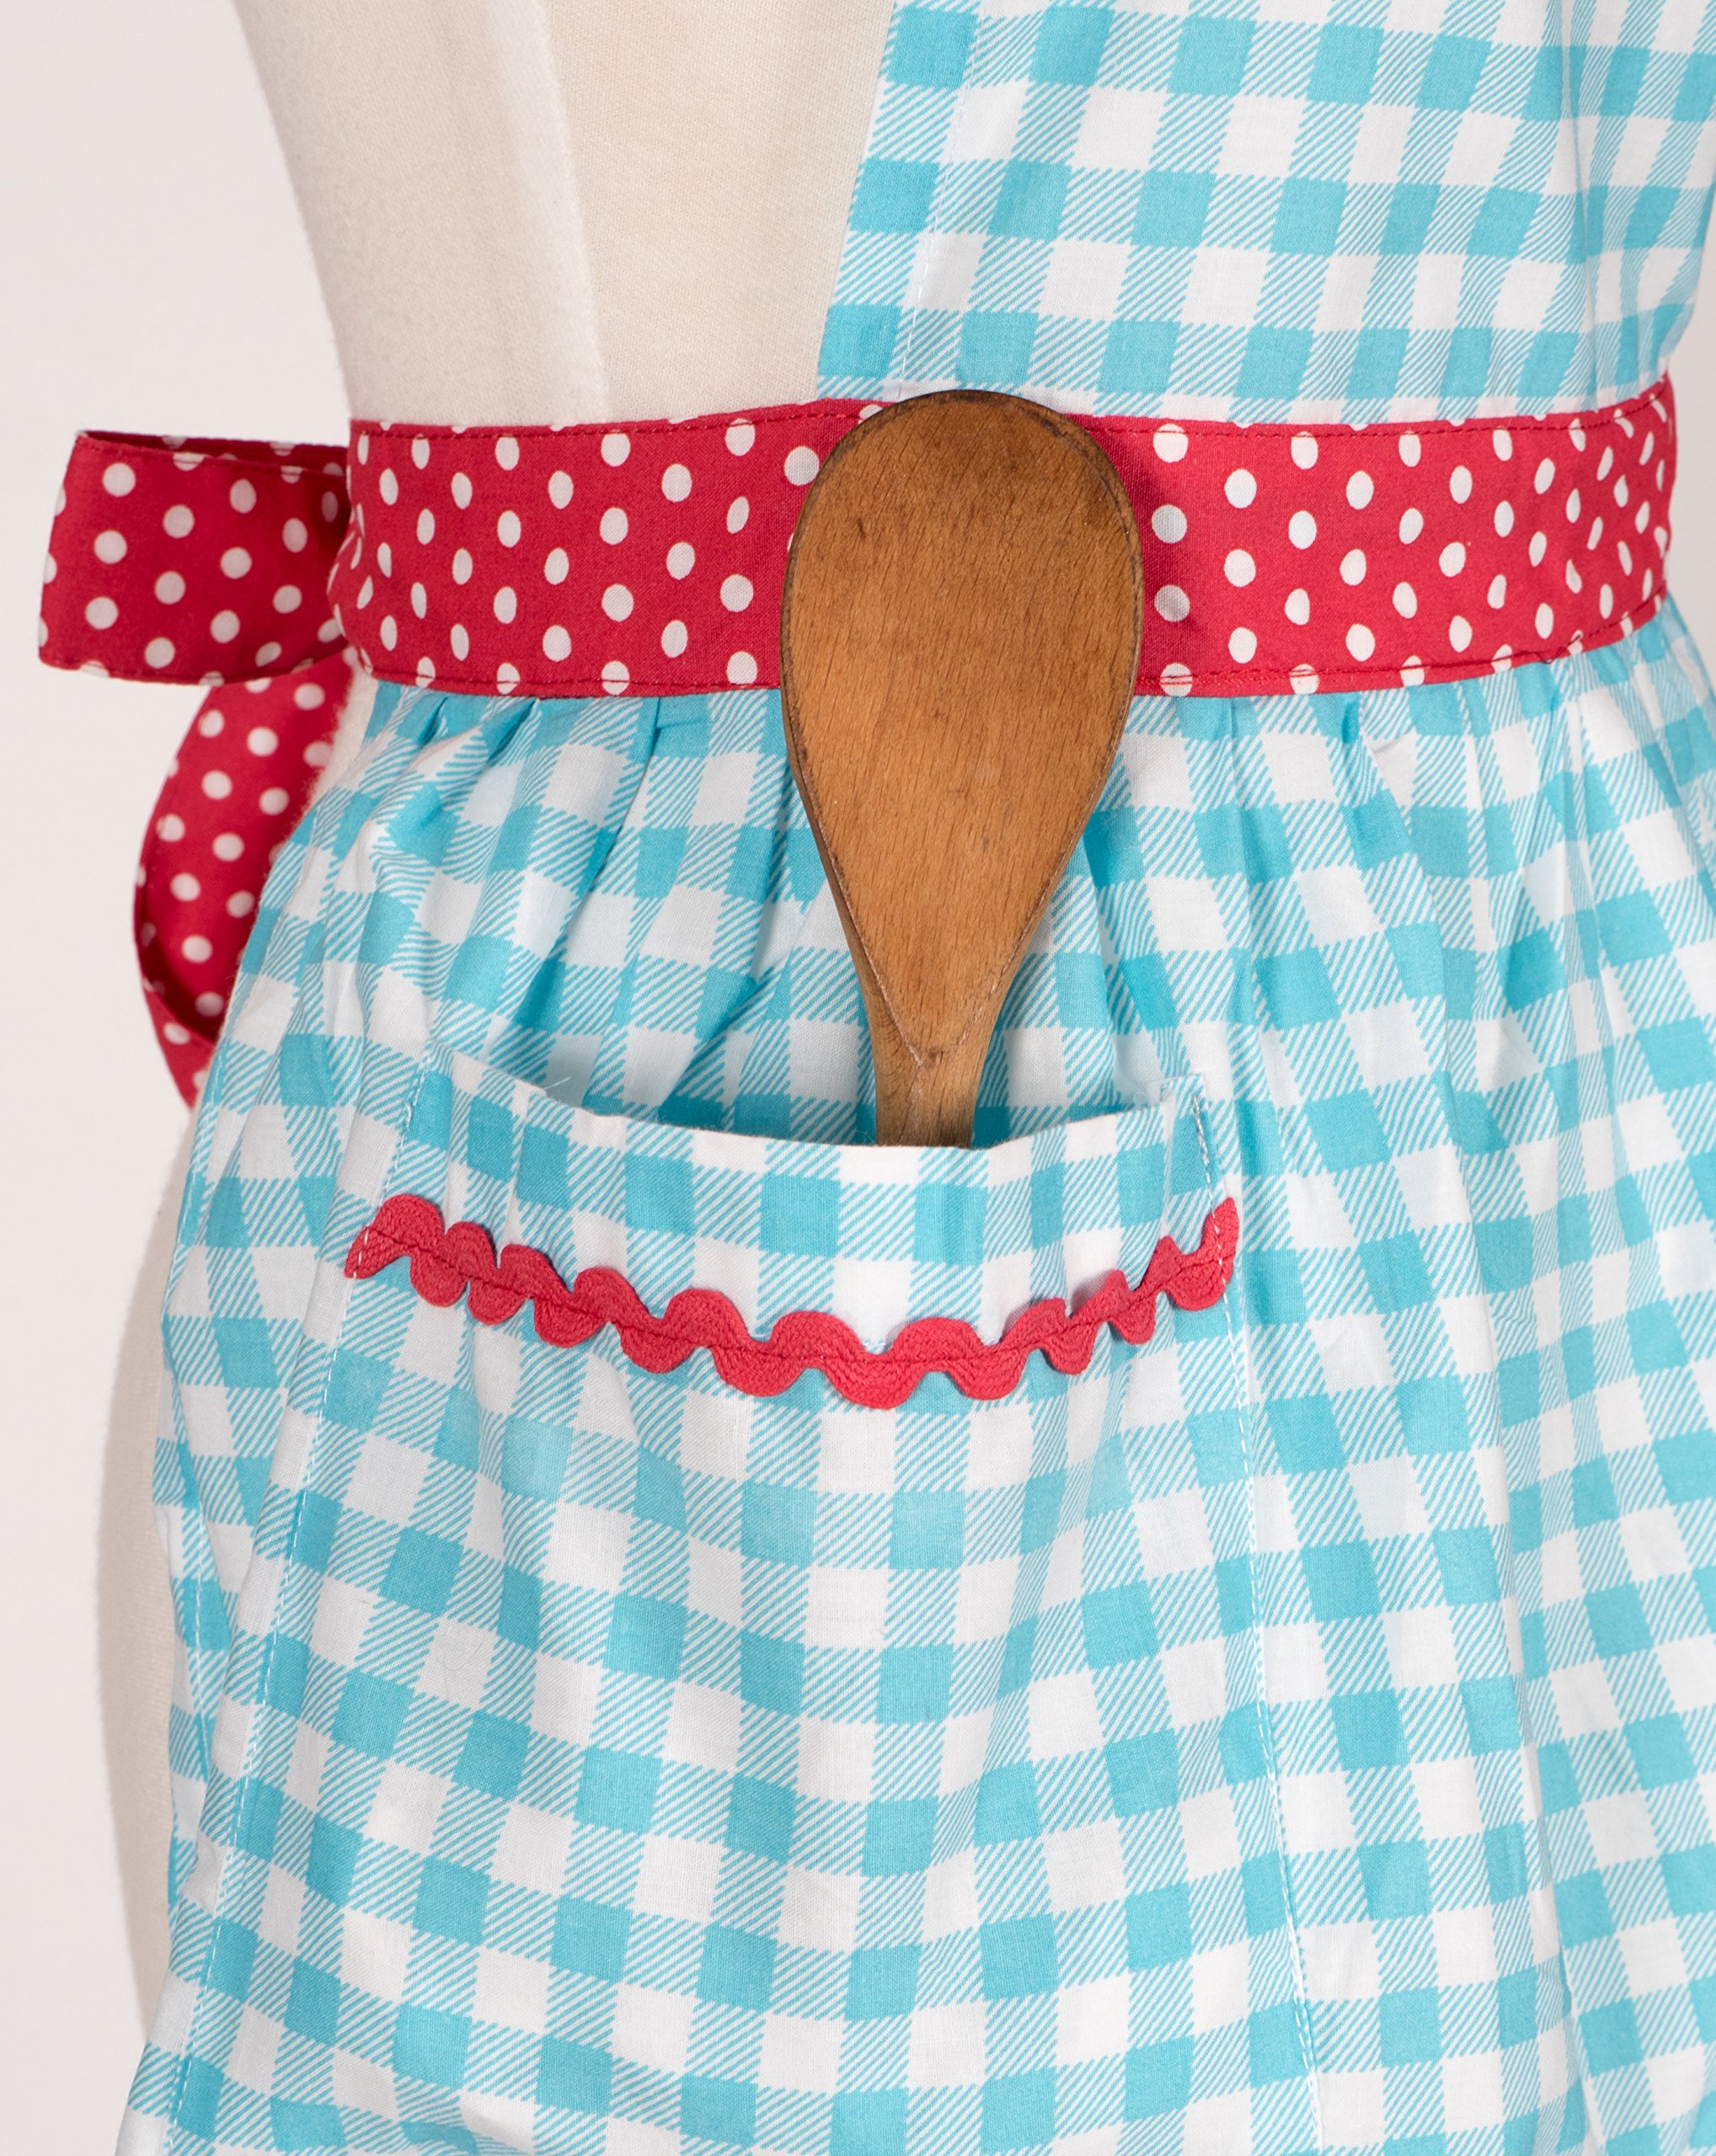 KAF Home Adult's Hostess Apron, Mary Ann, Adjustable Fit, Machine Washable